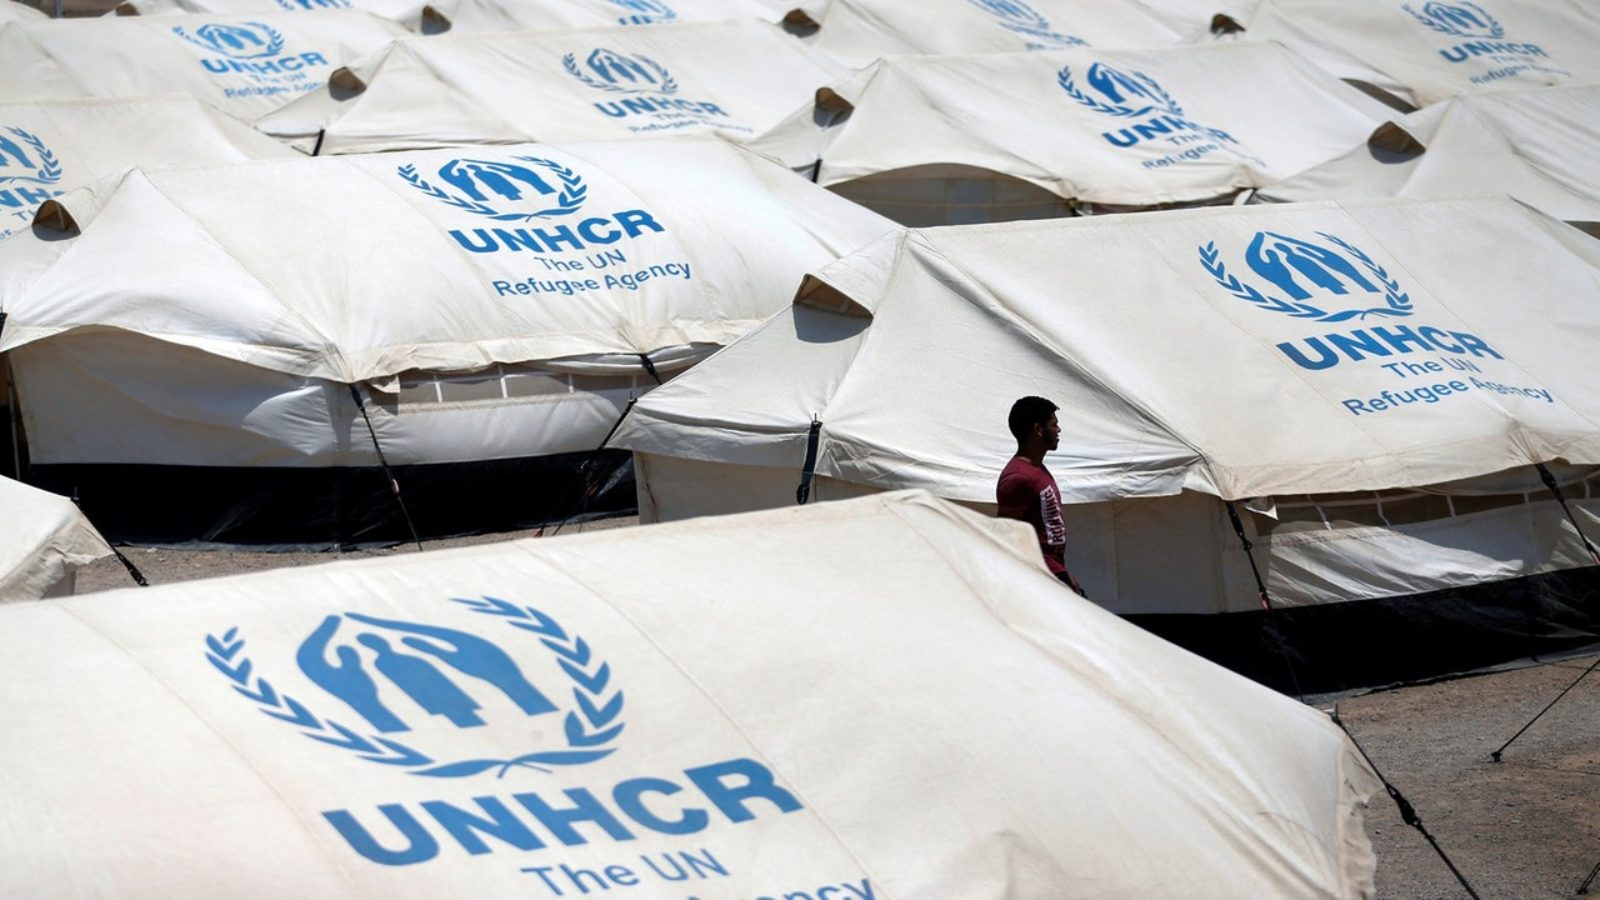 A man walks alone through a cluster of white tents with the UNHCR logo on them